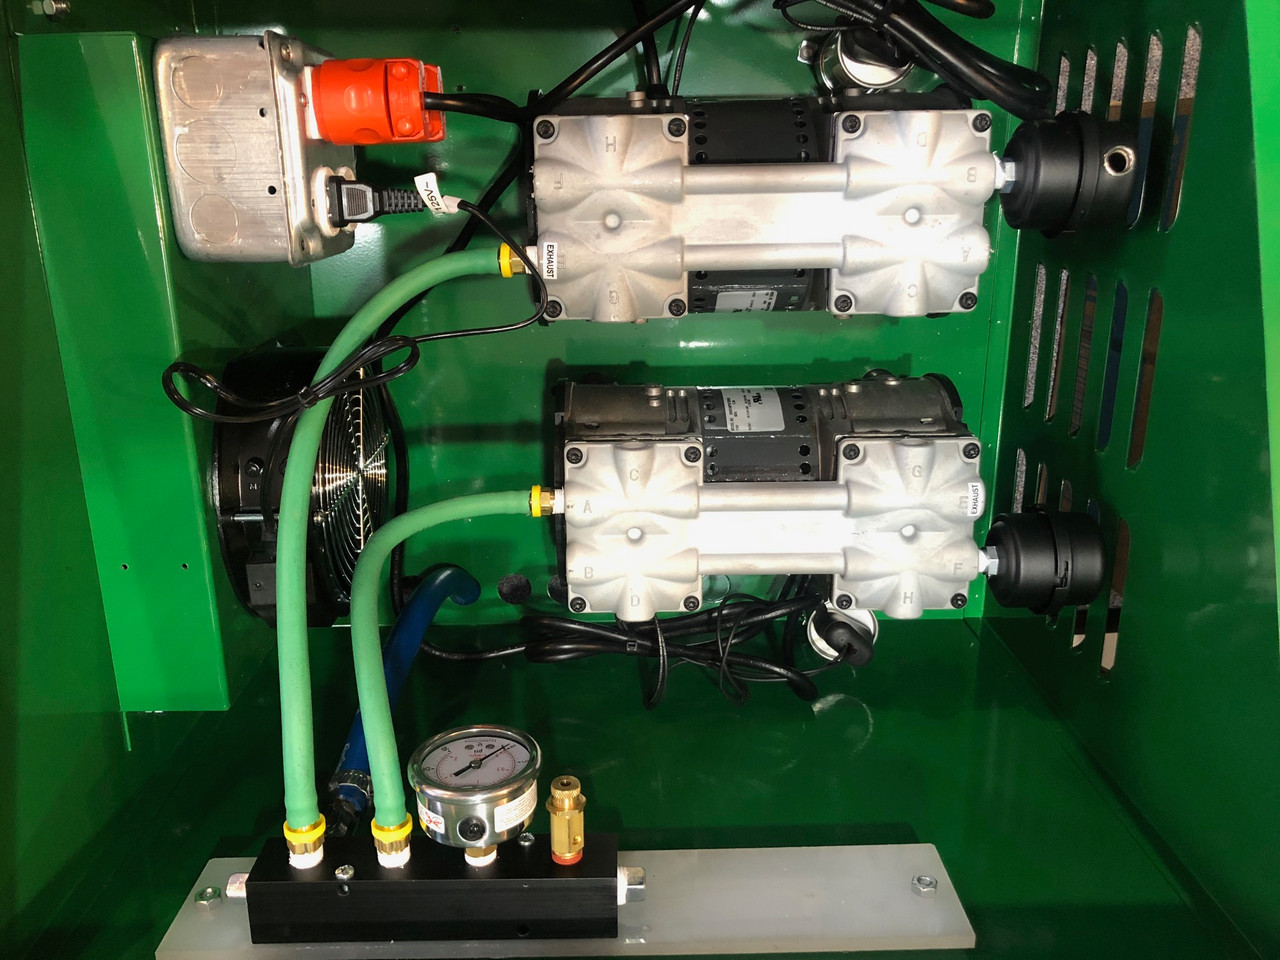 Lake Aerator and Lake Aeration System by Hydro Logic